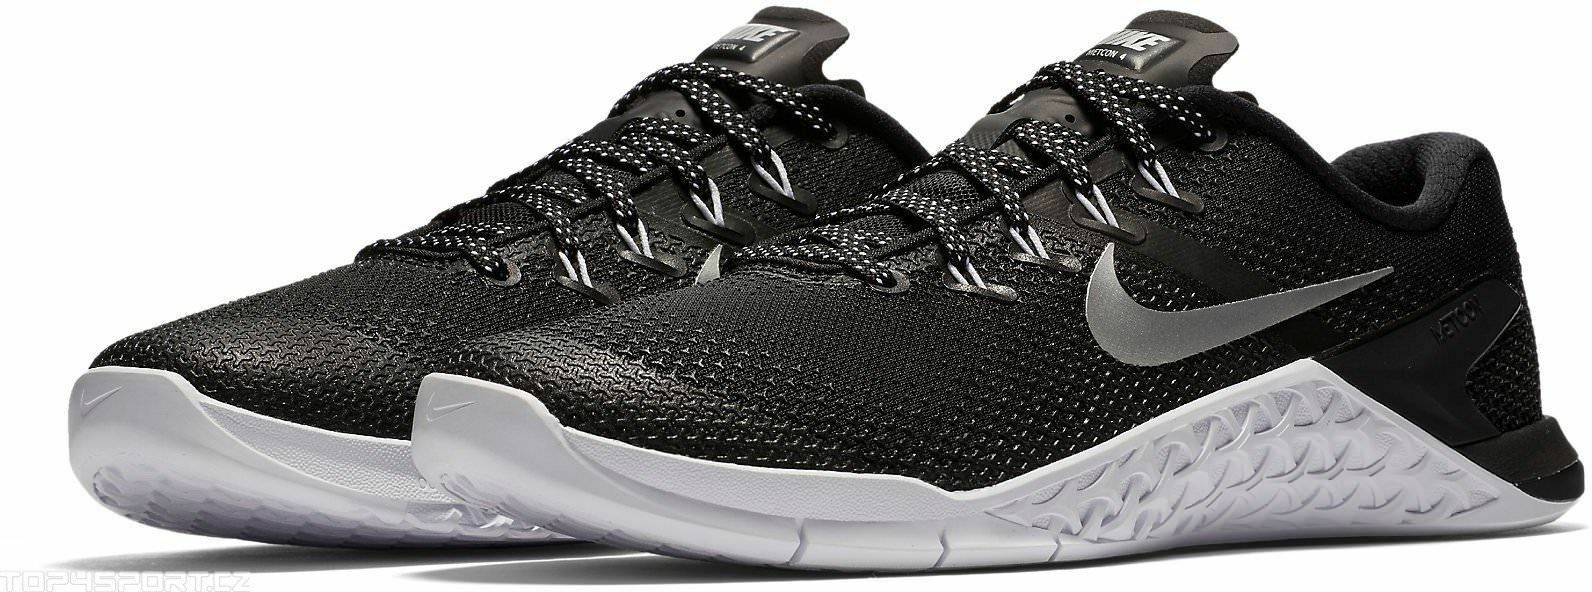 Nike Metcon 4 Black Metallic Silver White 924593 001 Women's Sz. 5.5 New shoes for men and women, limited time discount